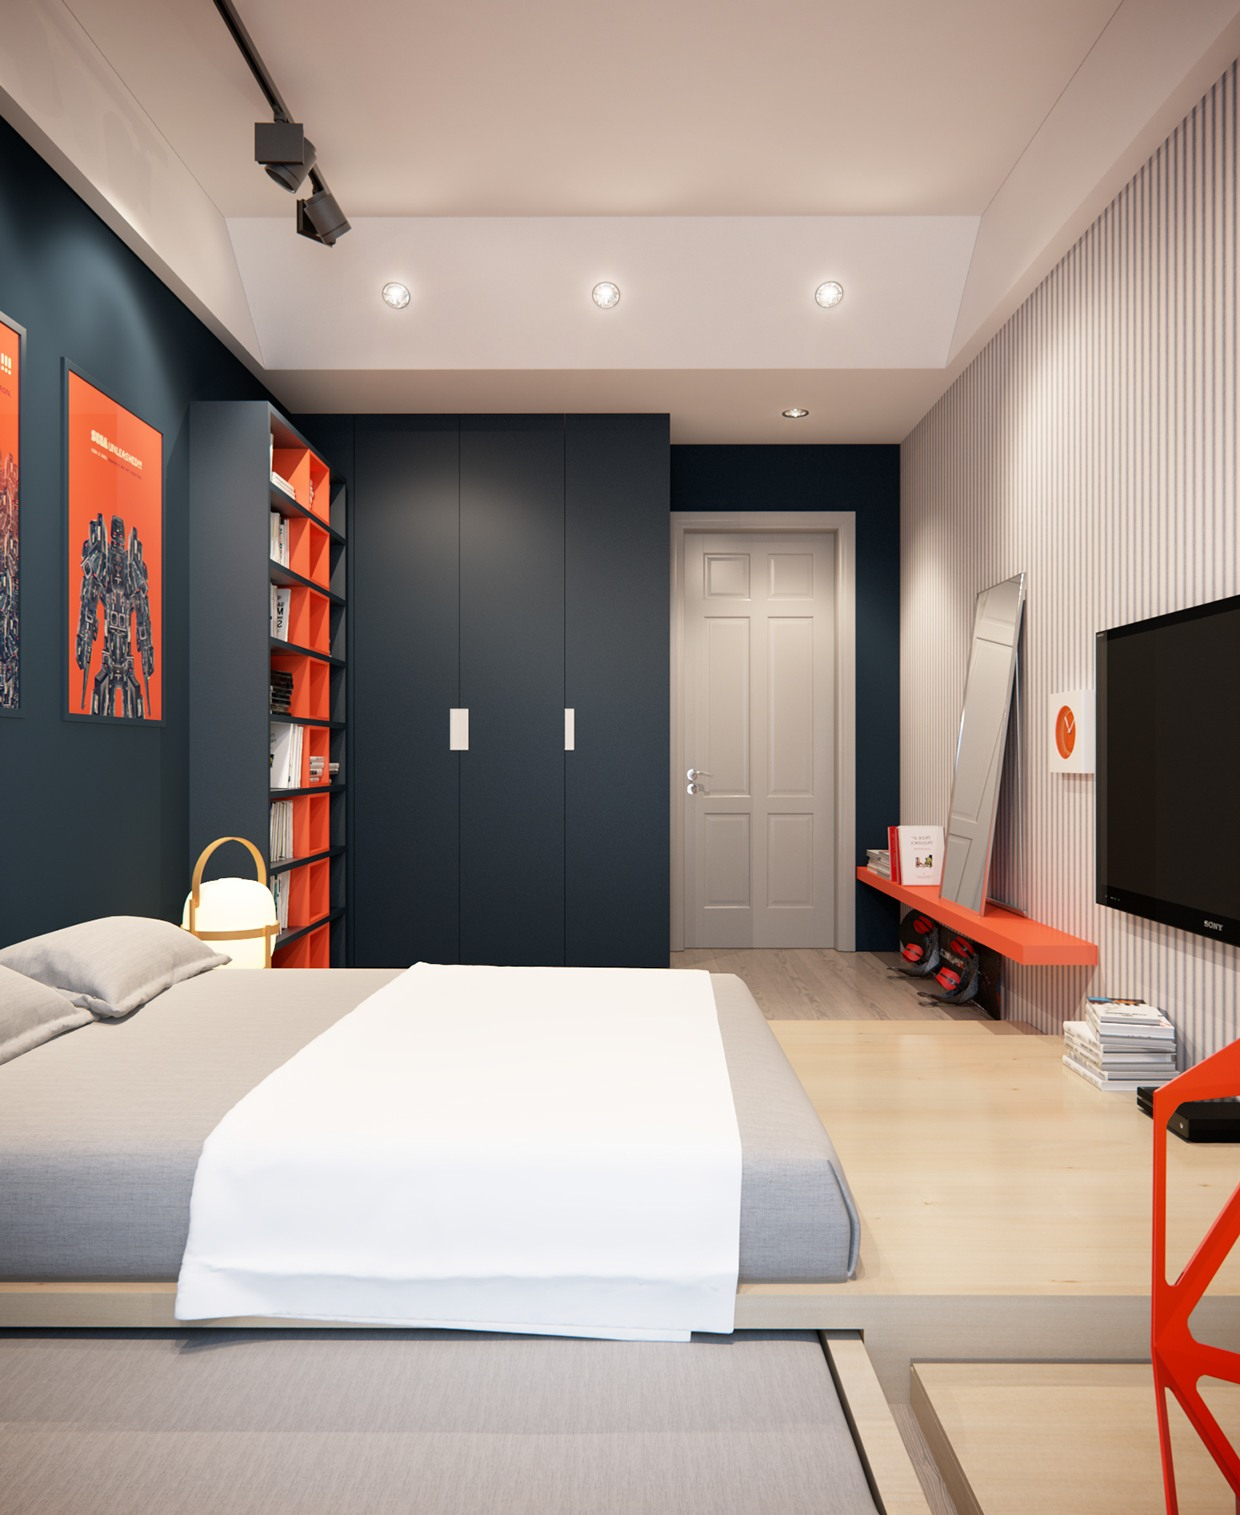 Boys bedroom design interior design ideas for Bedroom interior design pictures